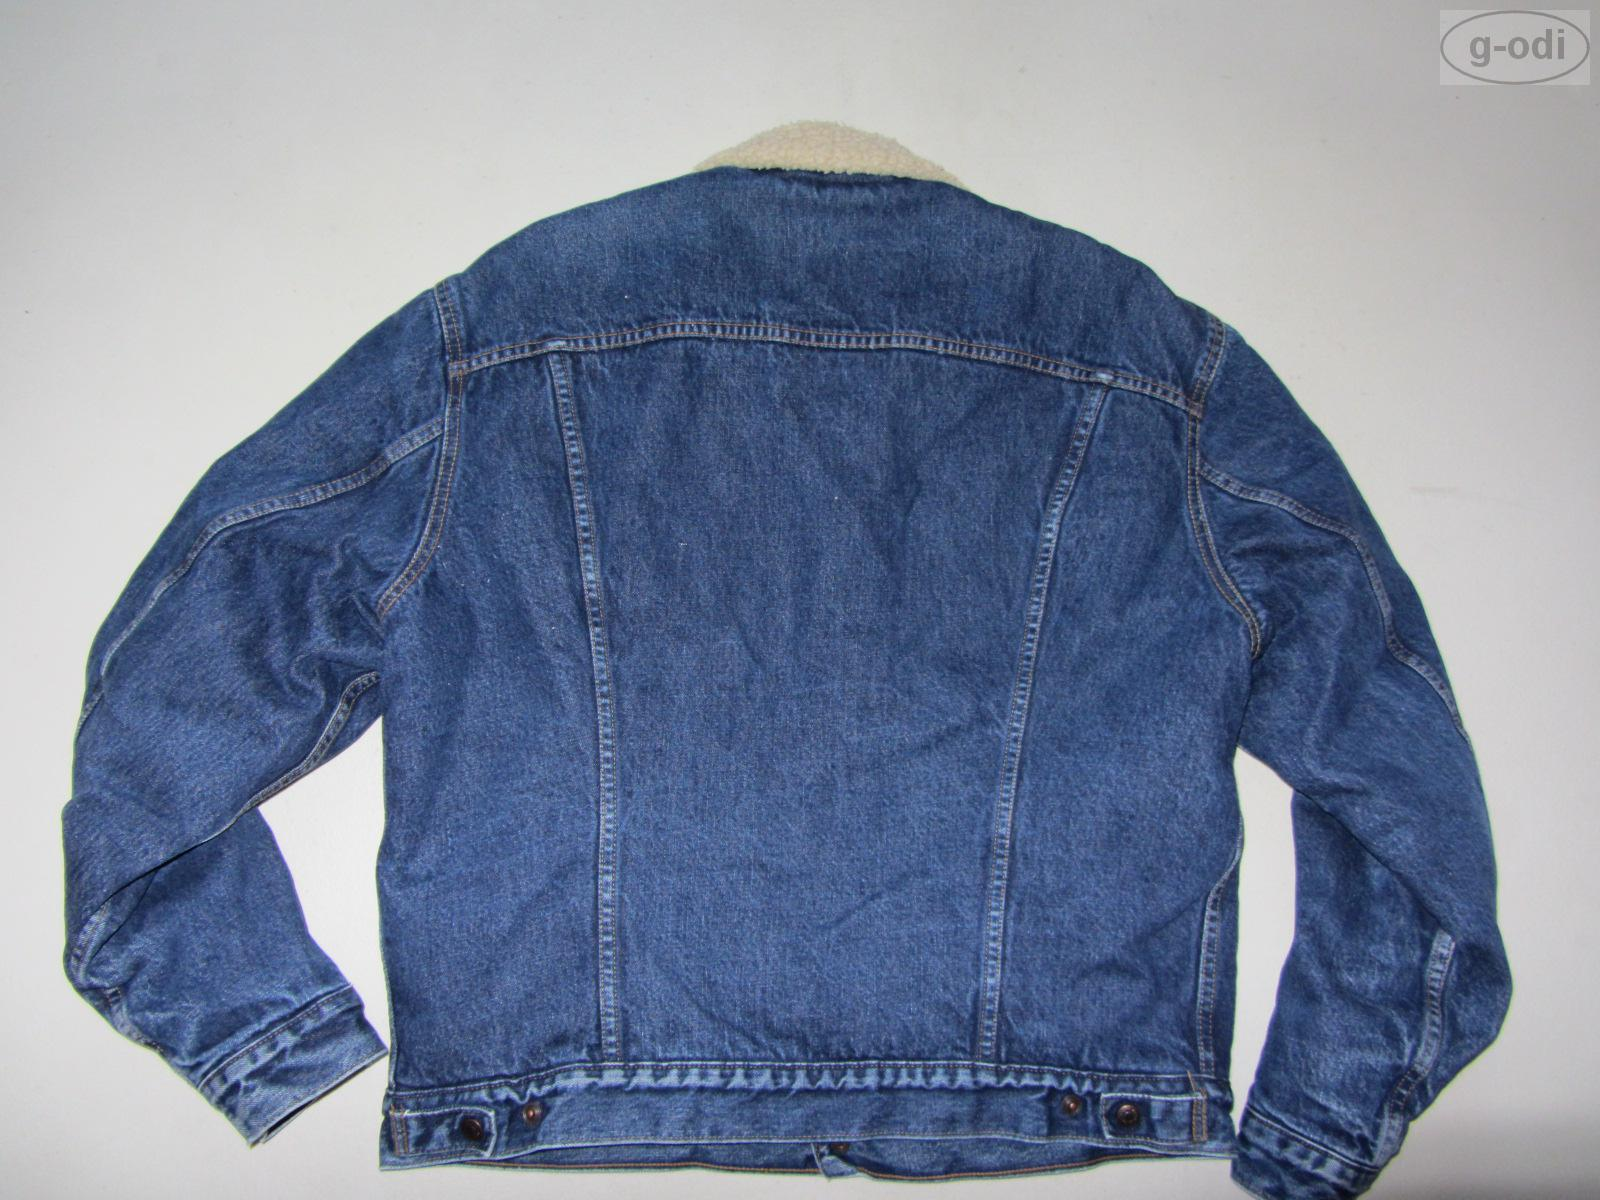 levi 39 s levis jacke jeansjacke m fell gr xxl top. Black Bedroom Furniture Sets. Home Design Ideas